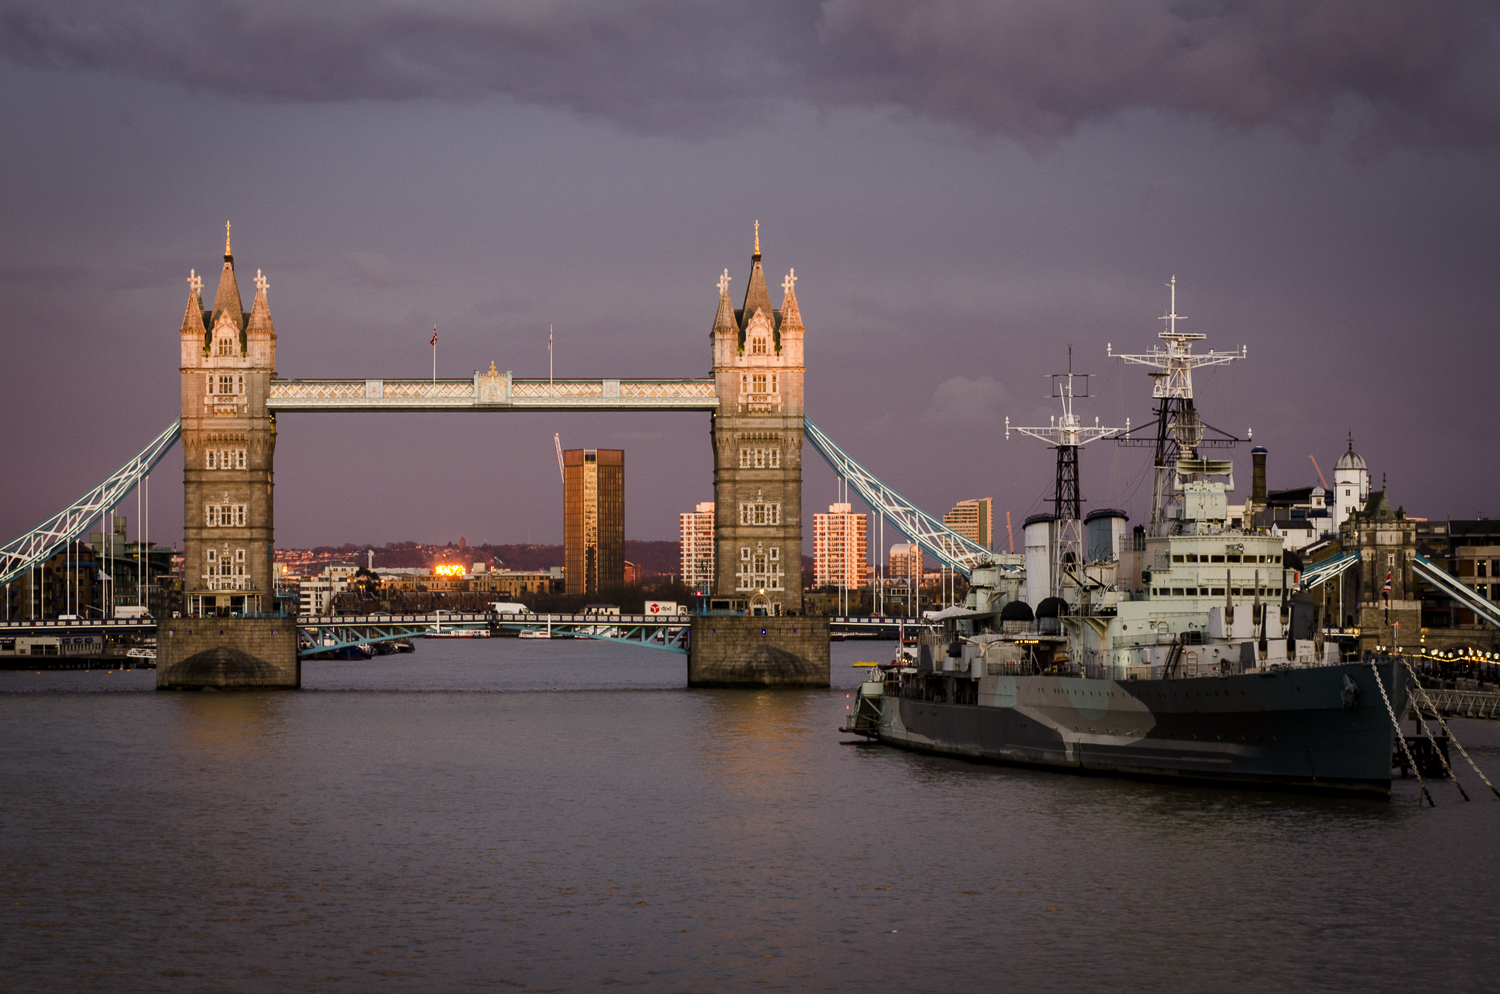 From London Bridge  Photography: Alexander J.E. Bradley - Nikon D7000 - AF NIKKOR 80-200mm f/2.8 D ED @ 86mm - f/16 - 1/8 - ISO:100